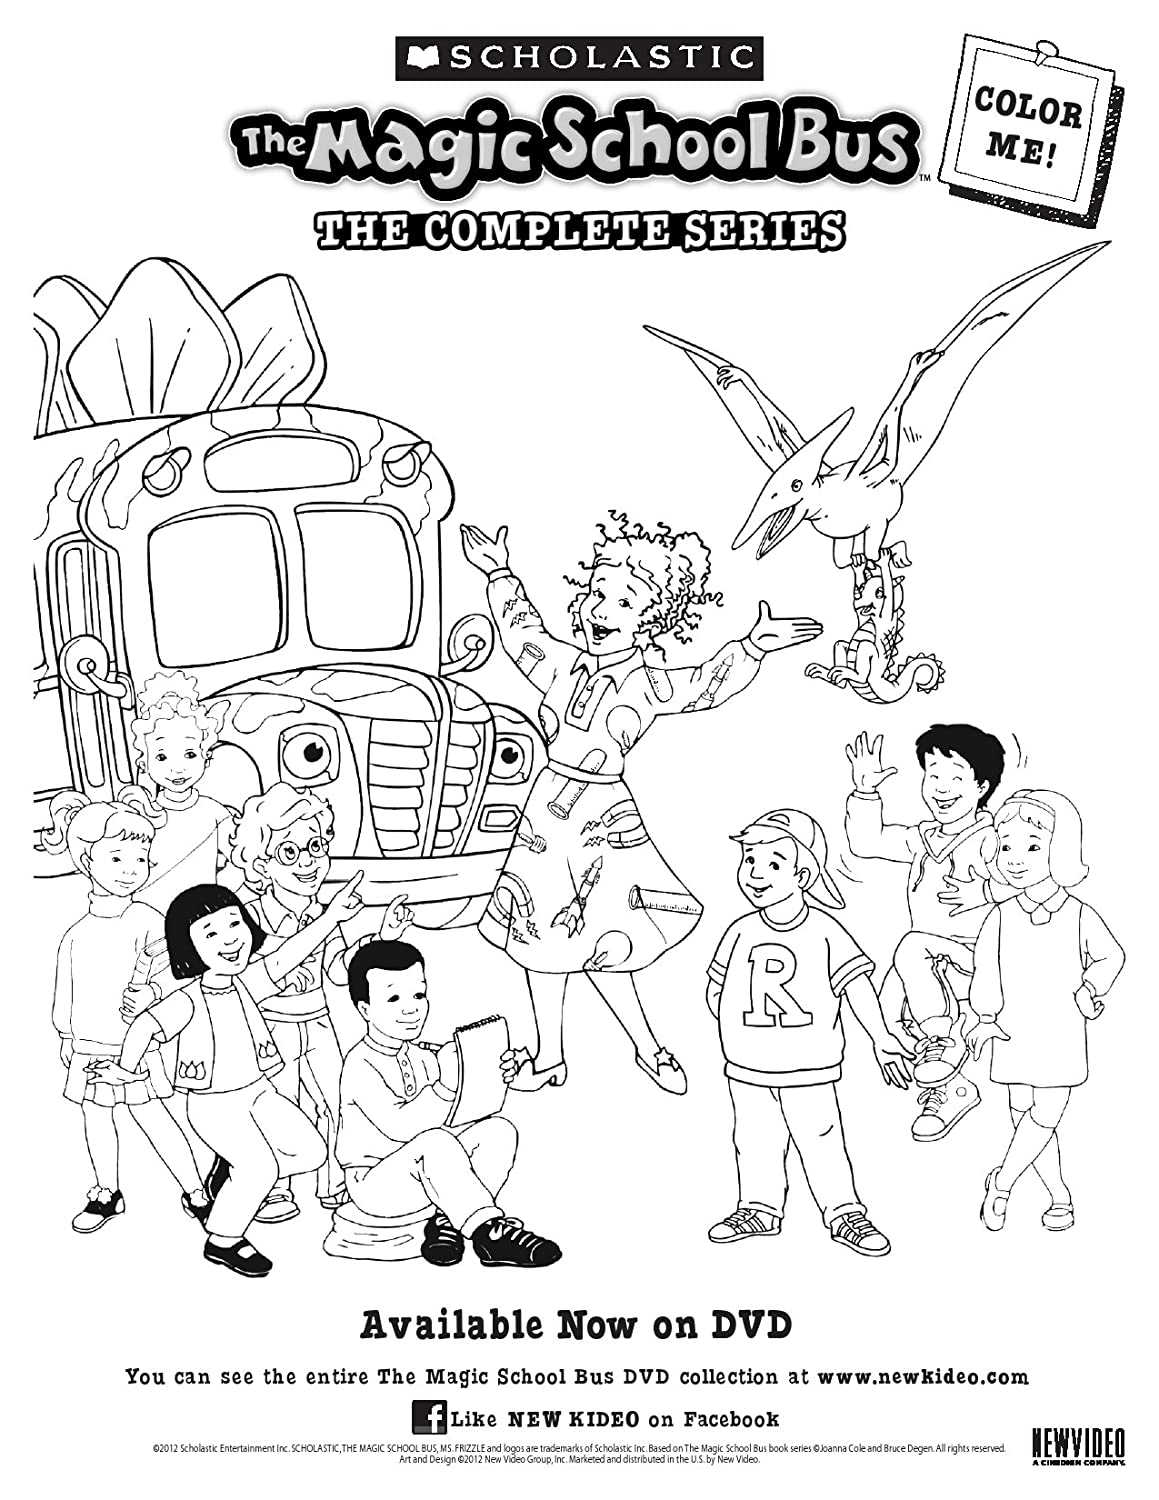 Magic school bus coloring pictures - Amazon Com The Magic School Bus The Complete Series Lily Tomlin Daniel Desanto Erica Luttrell Maia Filar Tara Meyer Larry Jacobs